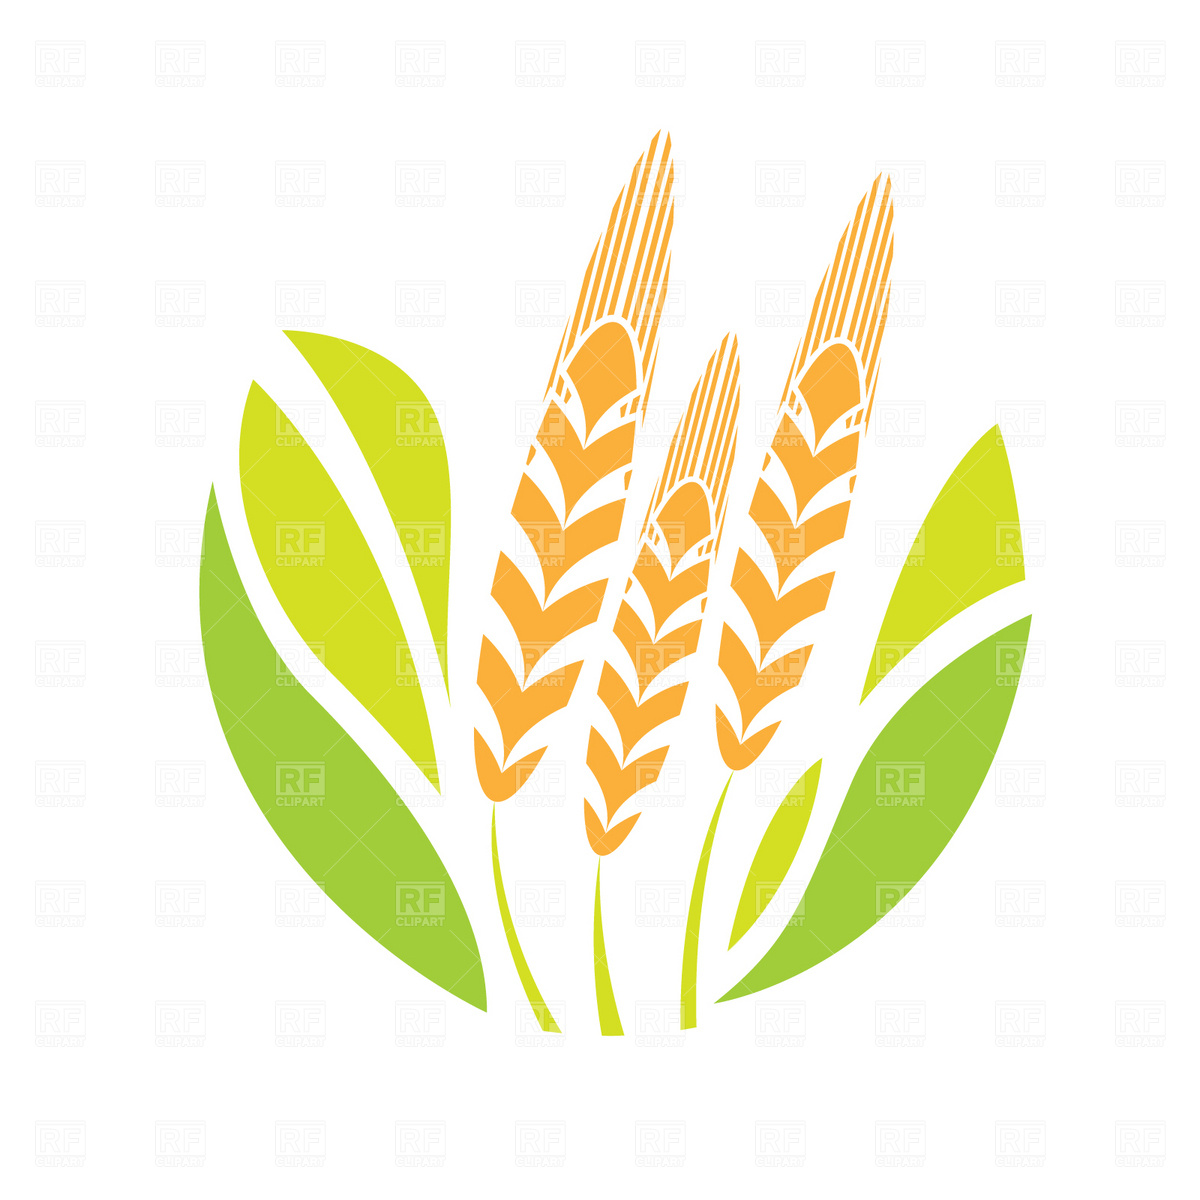 Agriculture logos clipart